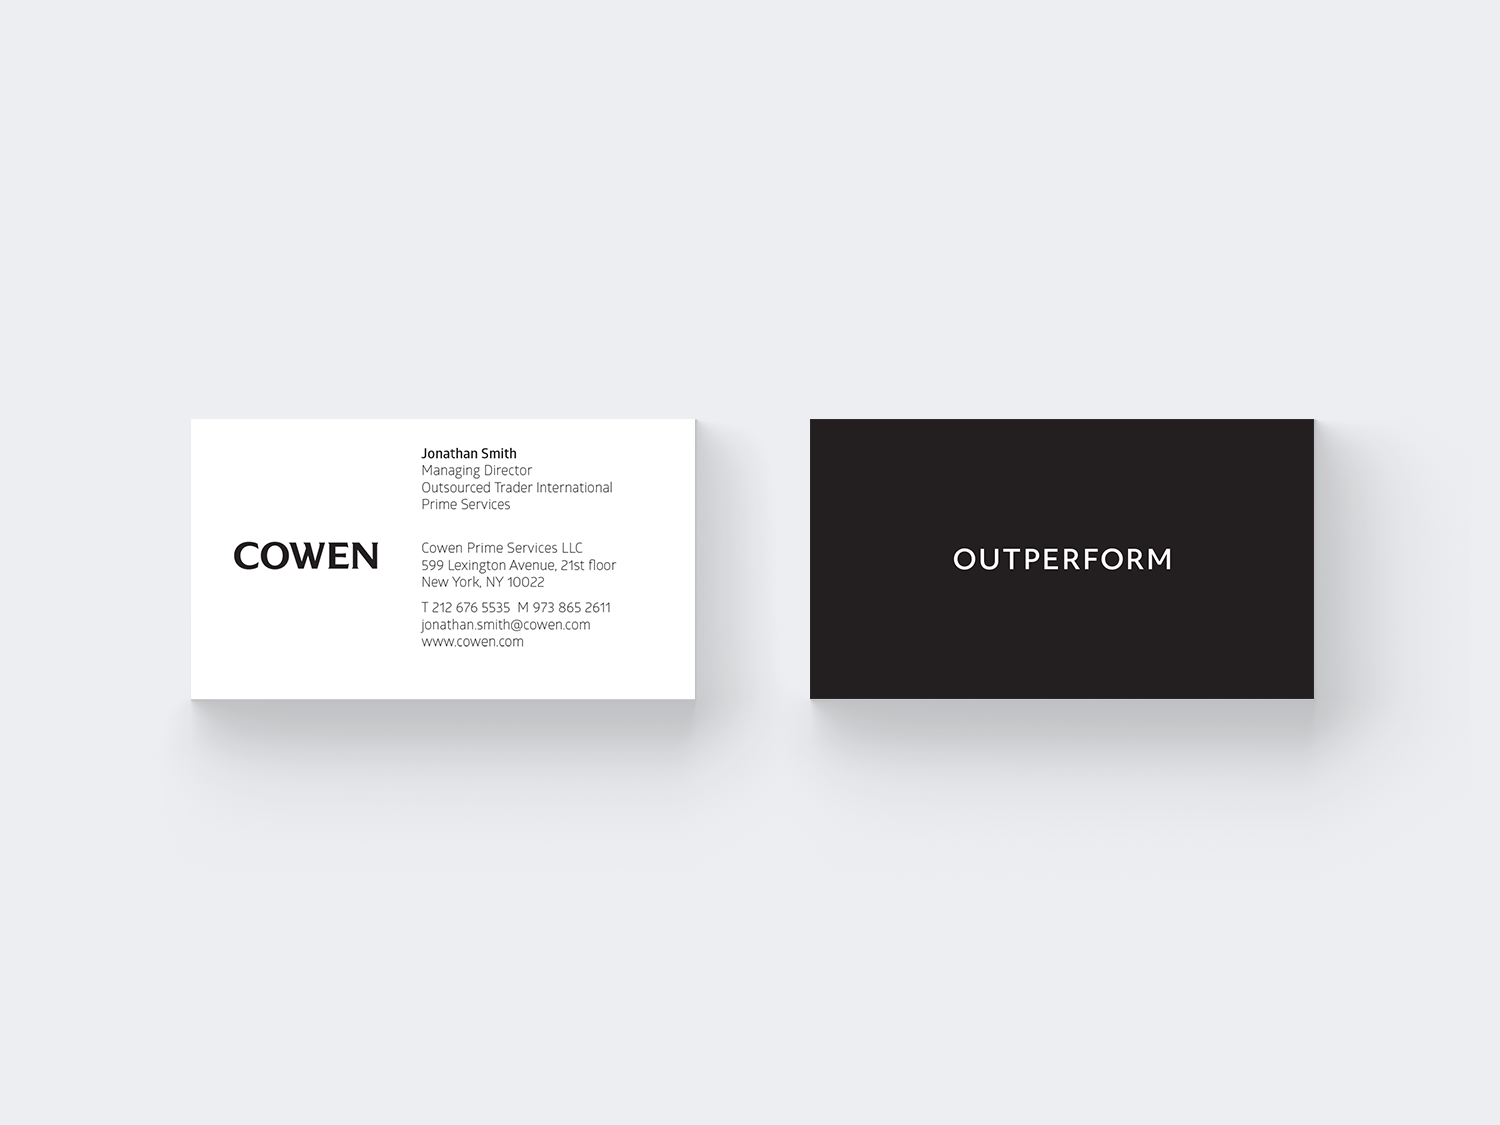 Cowen business card front and back (with Outperform tagline)